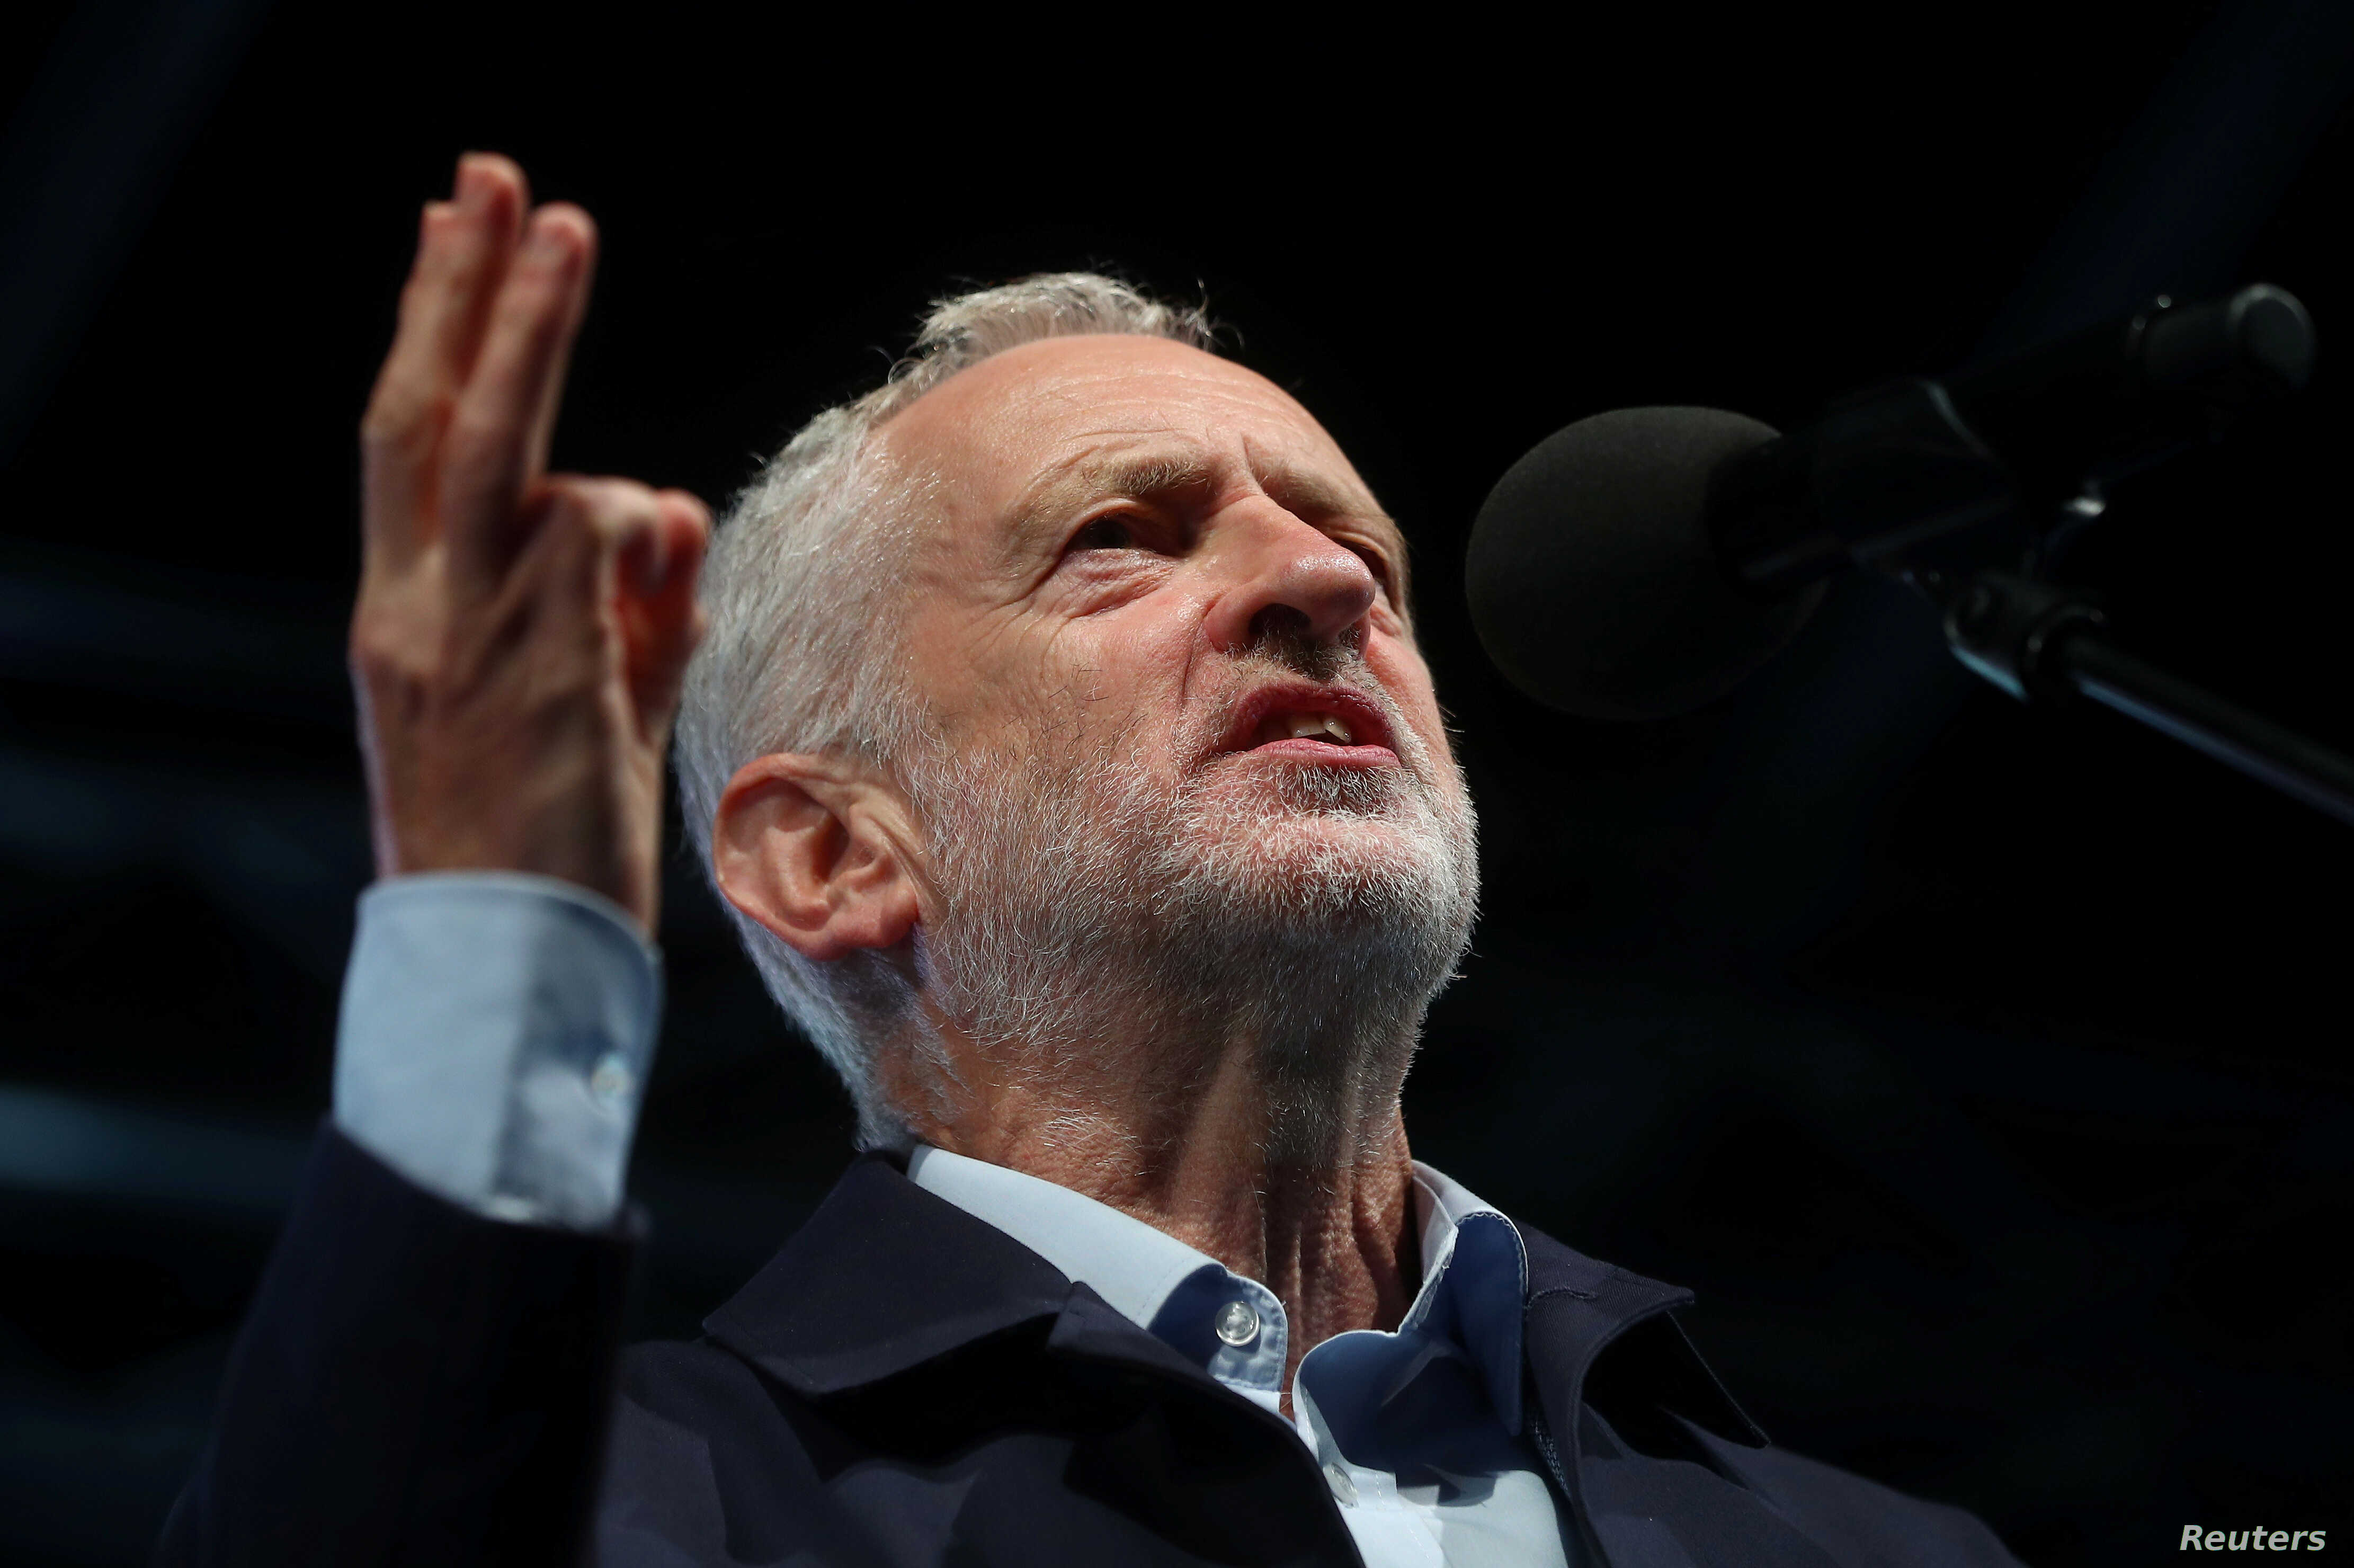 Britain's Labor Party leader Jeremy Corbyn speaks during a rally ahead of his party's annual conference, in Liverpool, England, Sept. 22, 2018.